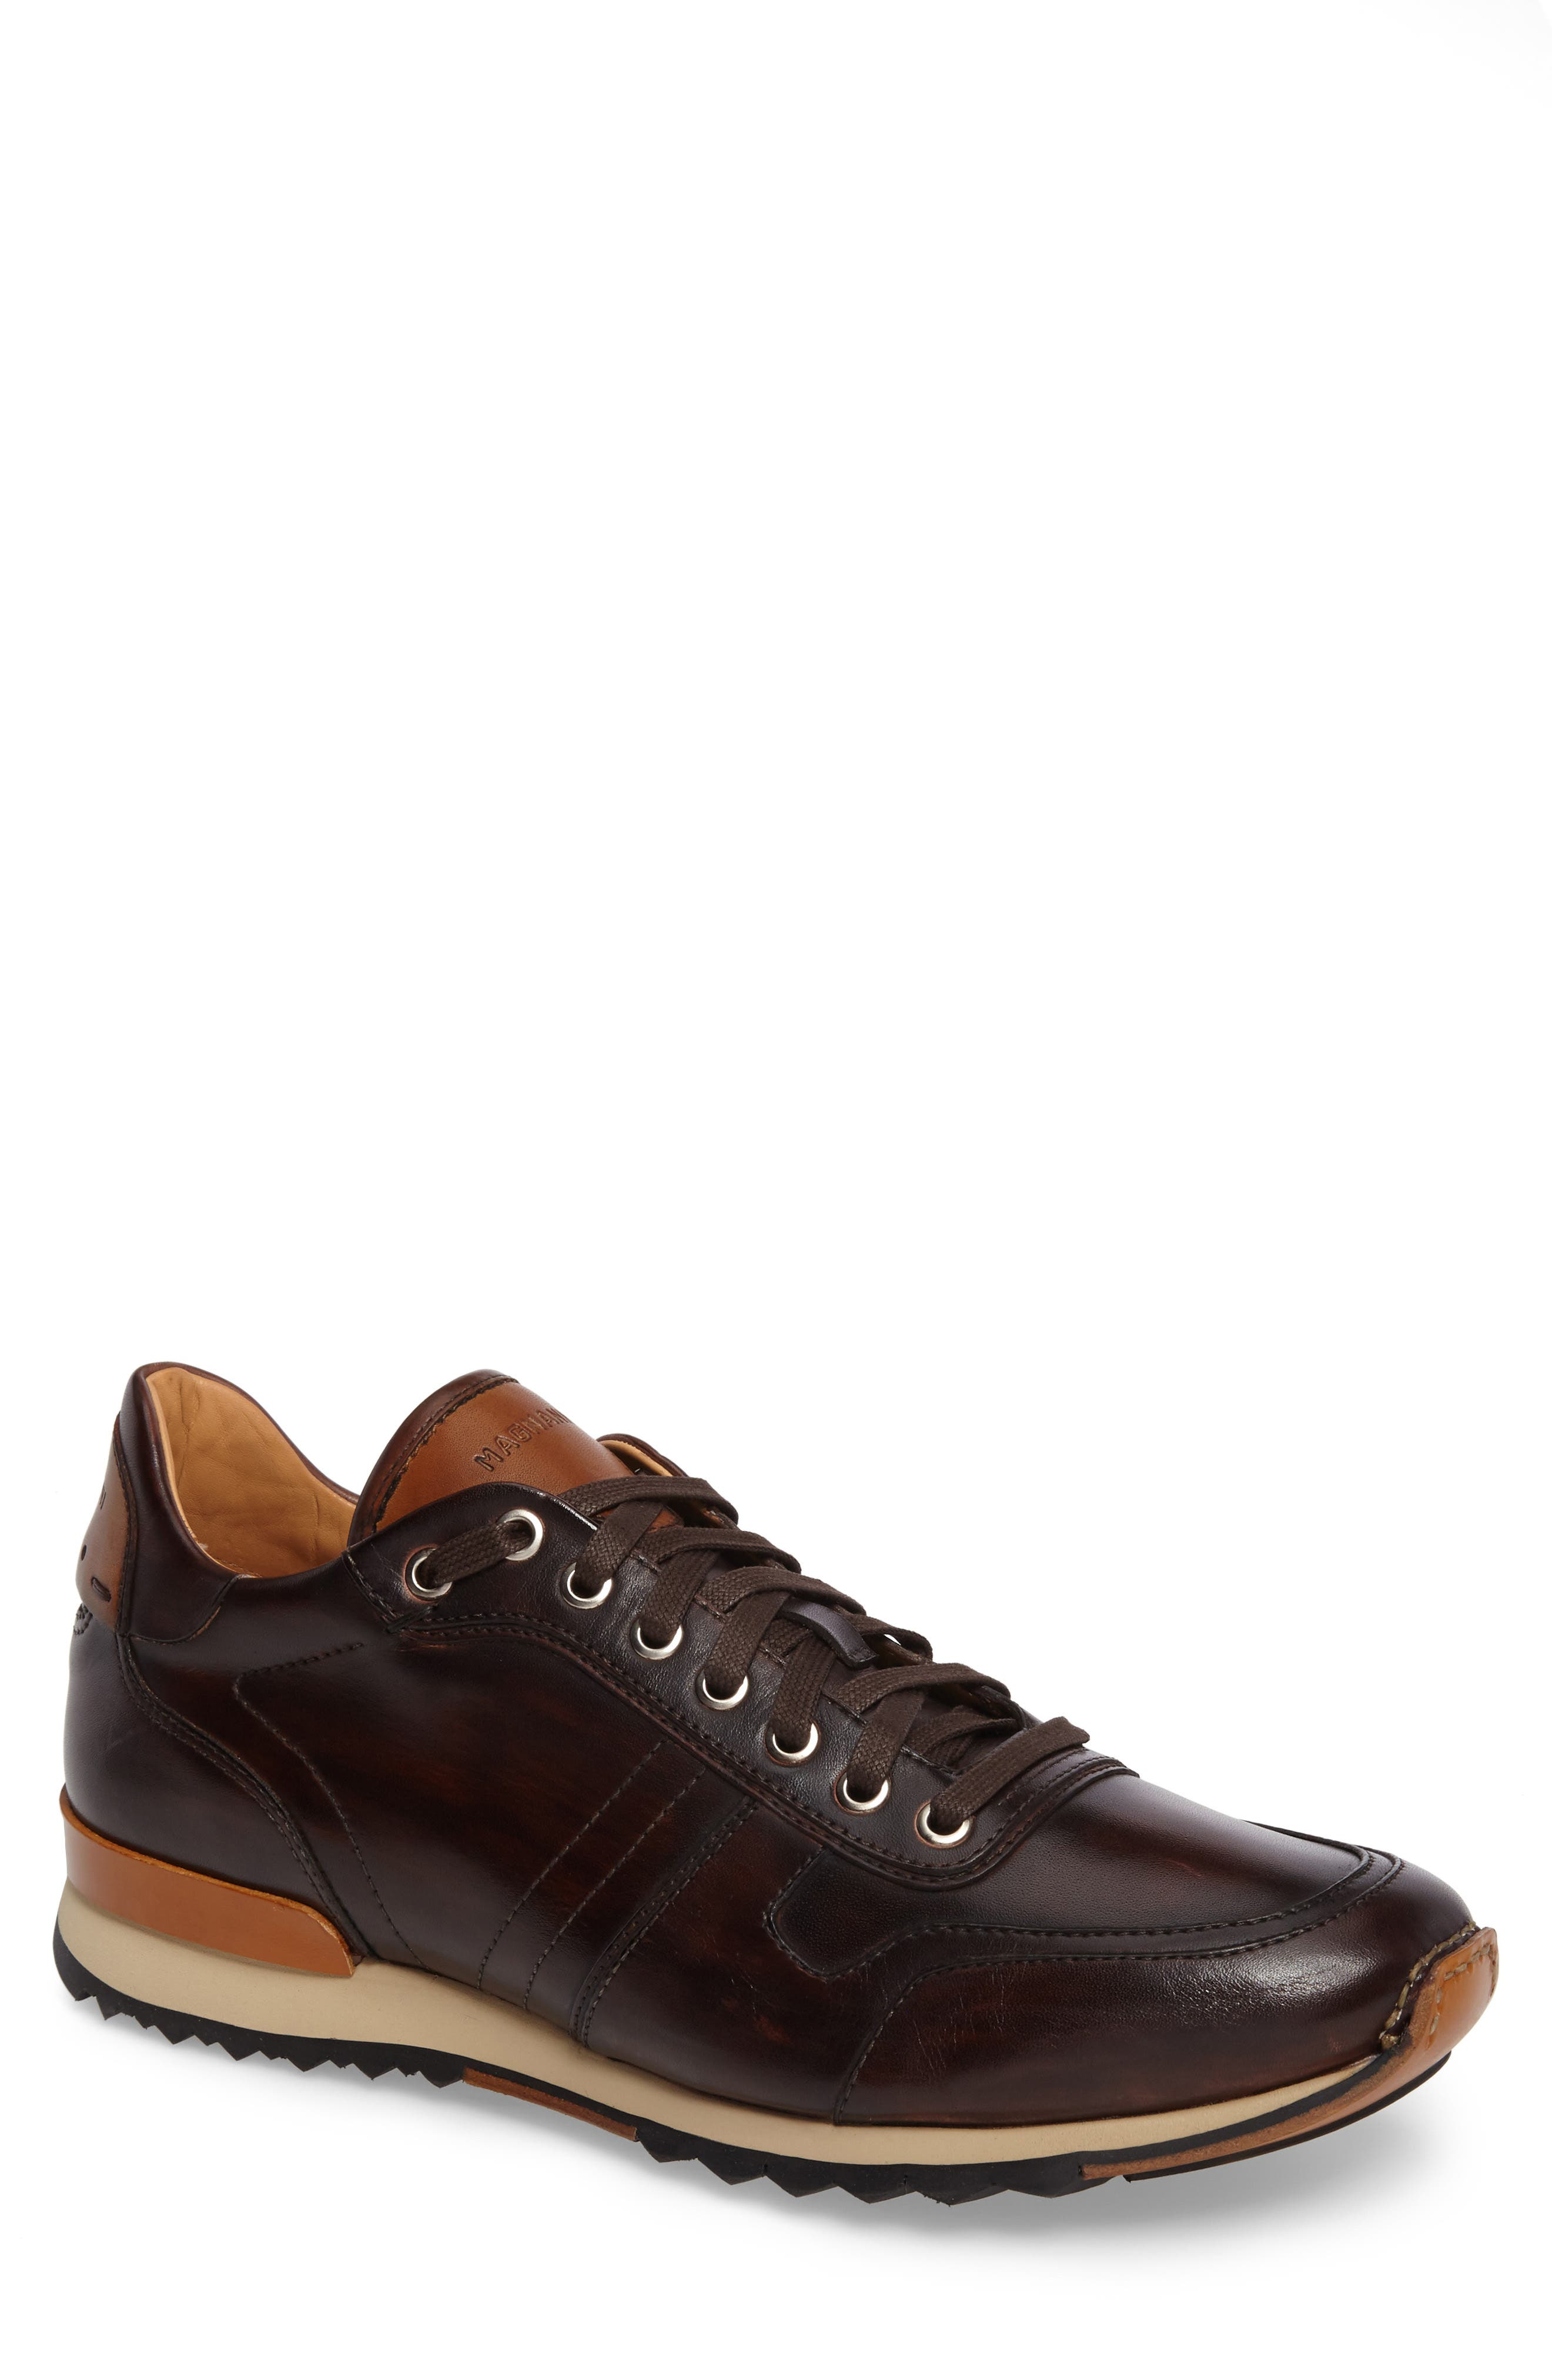 Galio Sneaker,                             Main thumbnail 1, color,                             Brown Leather